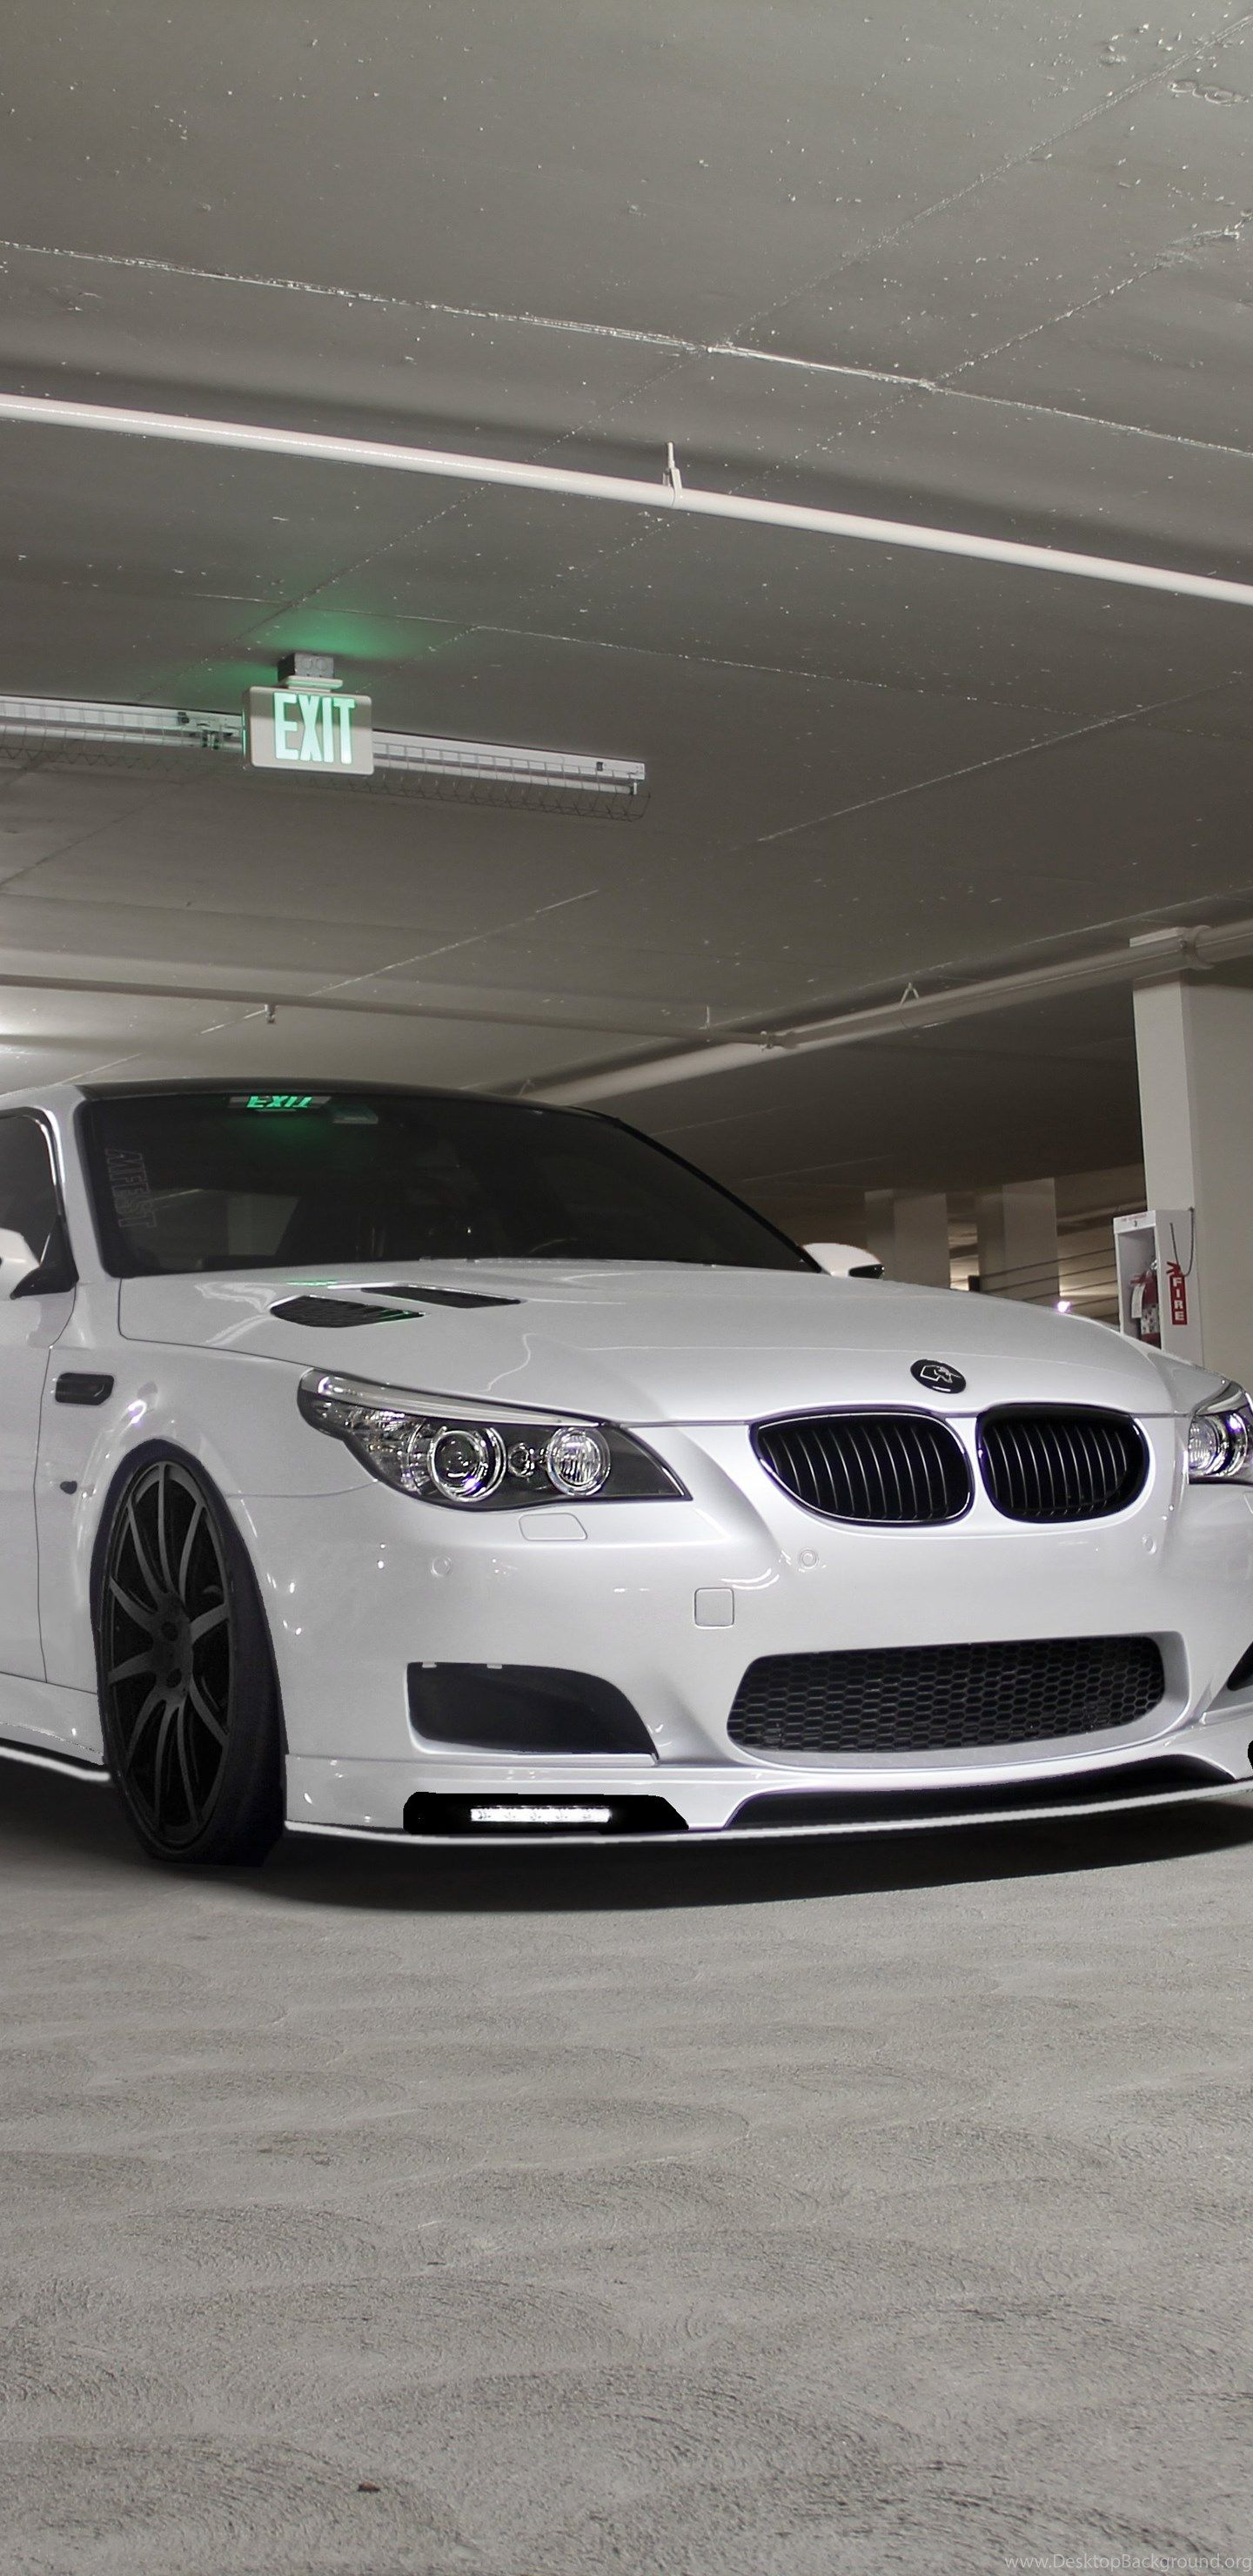 Bmw M5 E60 Wallpapers Wallpaper Cave